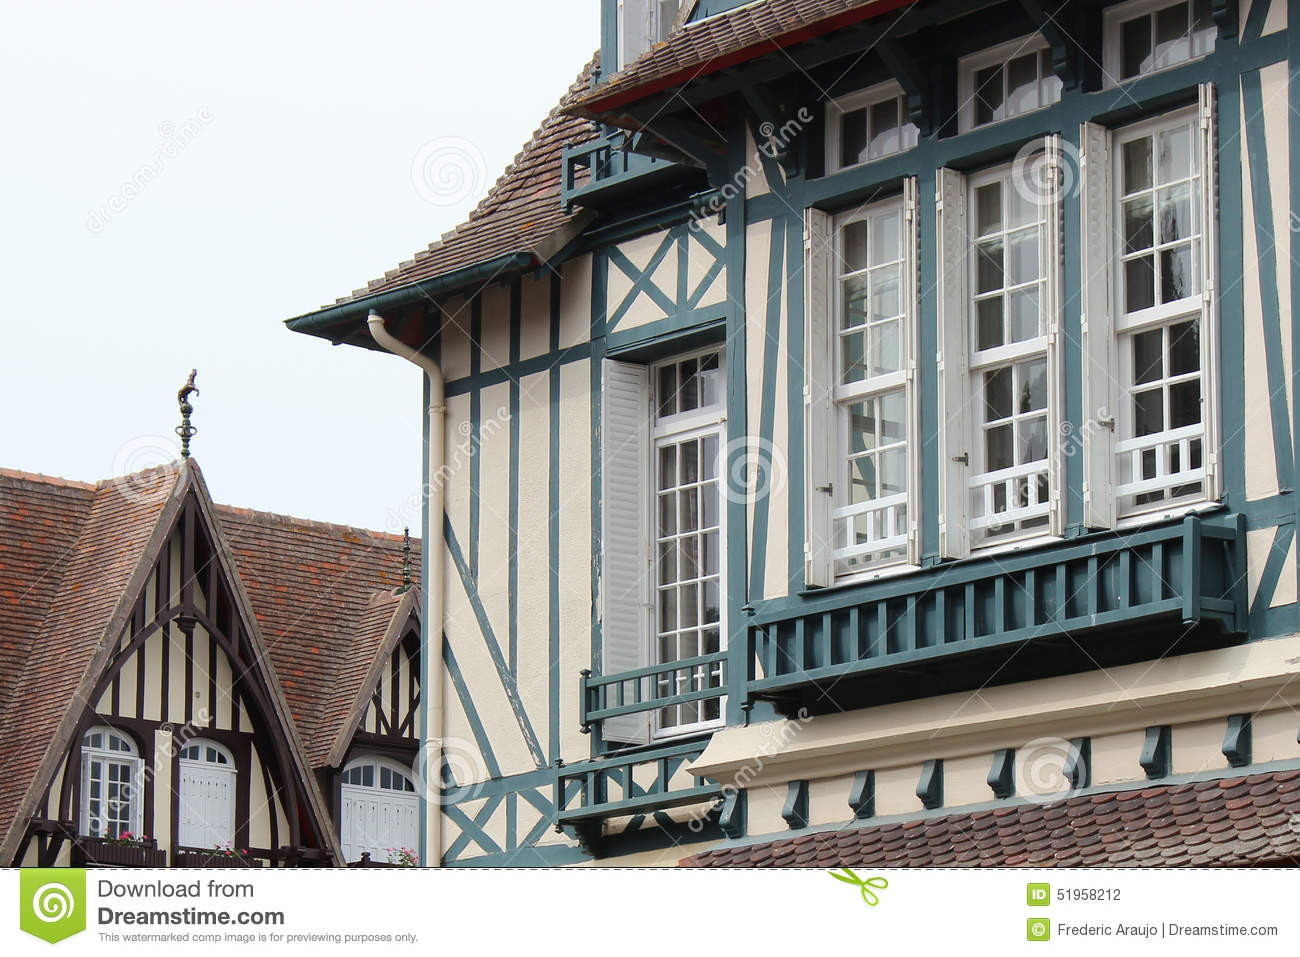 Beams painted in blue decorate the facade of a house situated in Deauville (France)